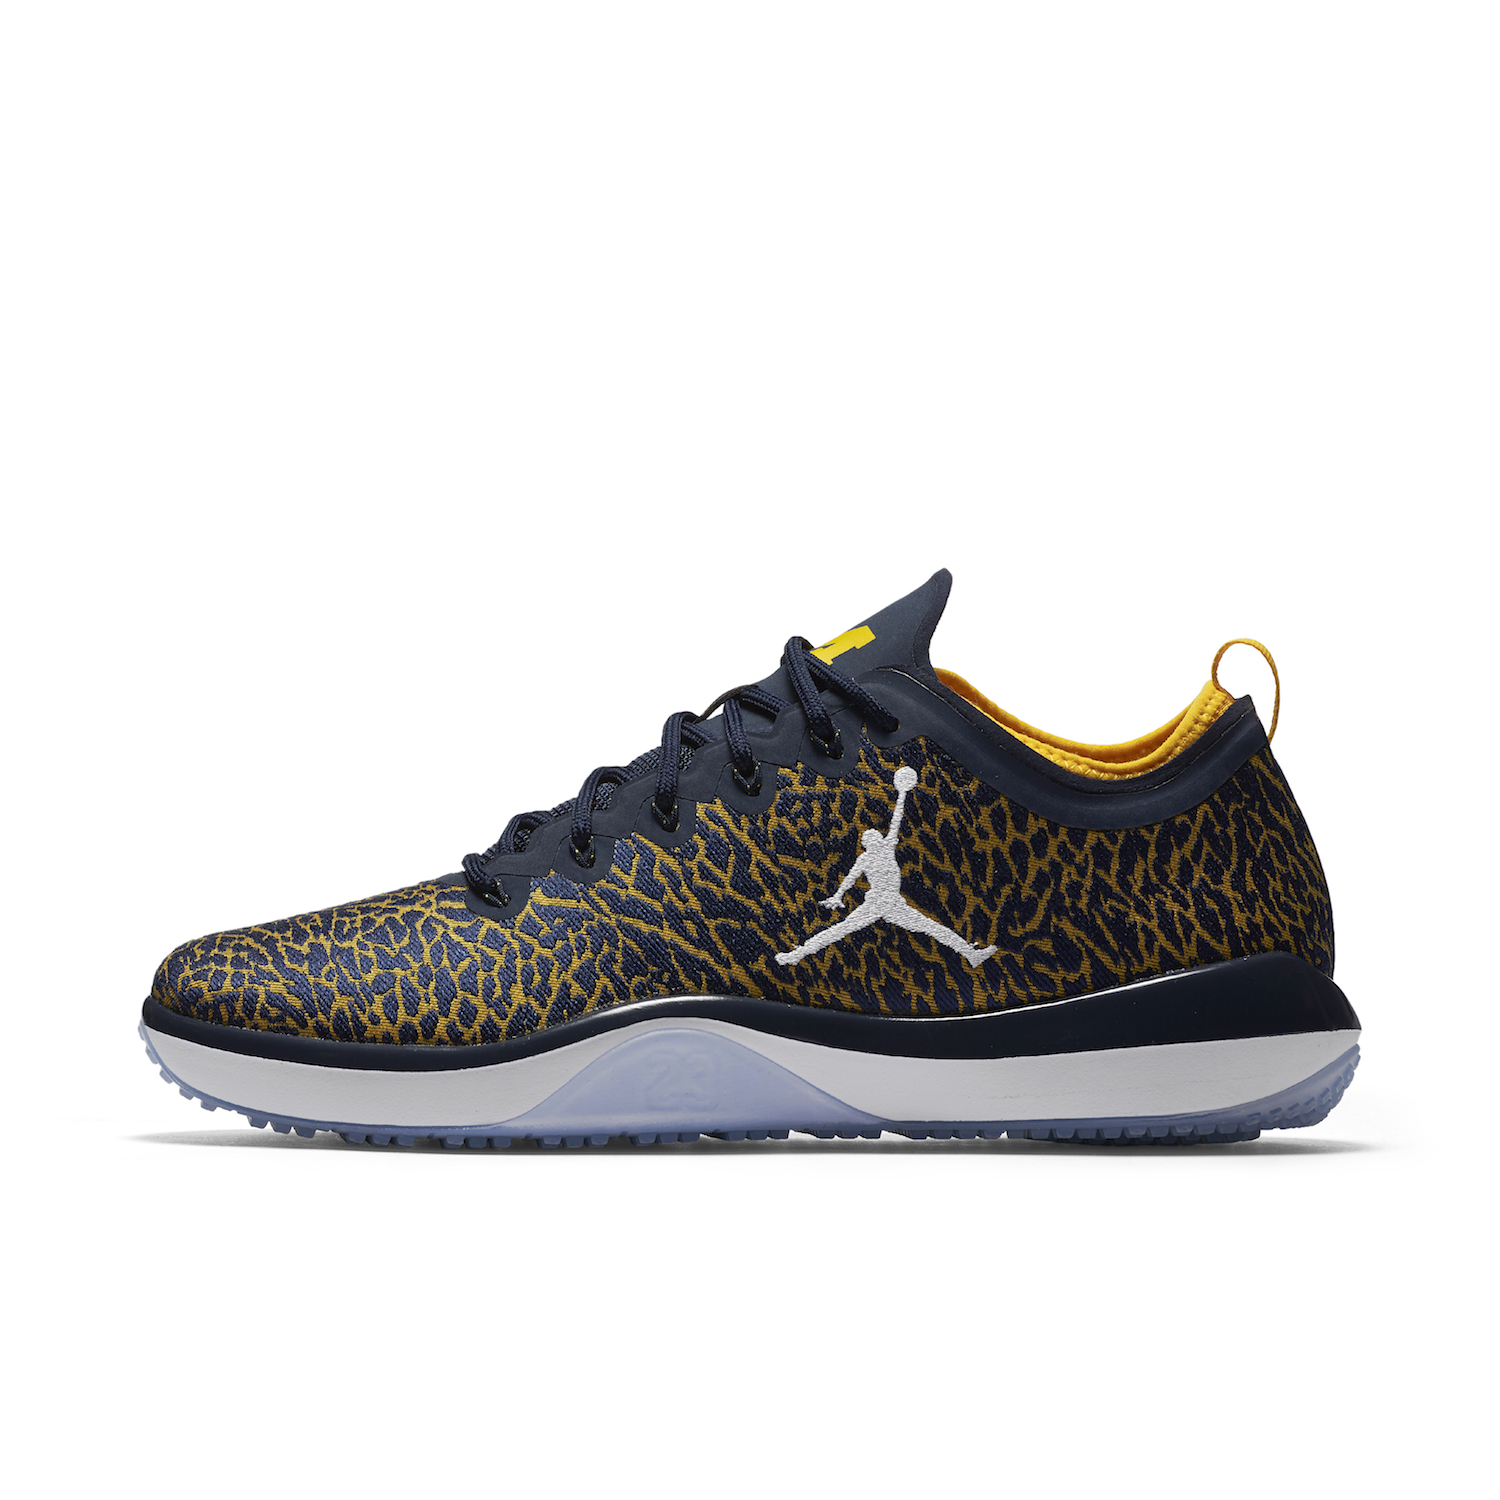 university of michigan jordan brand 8